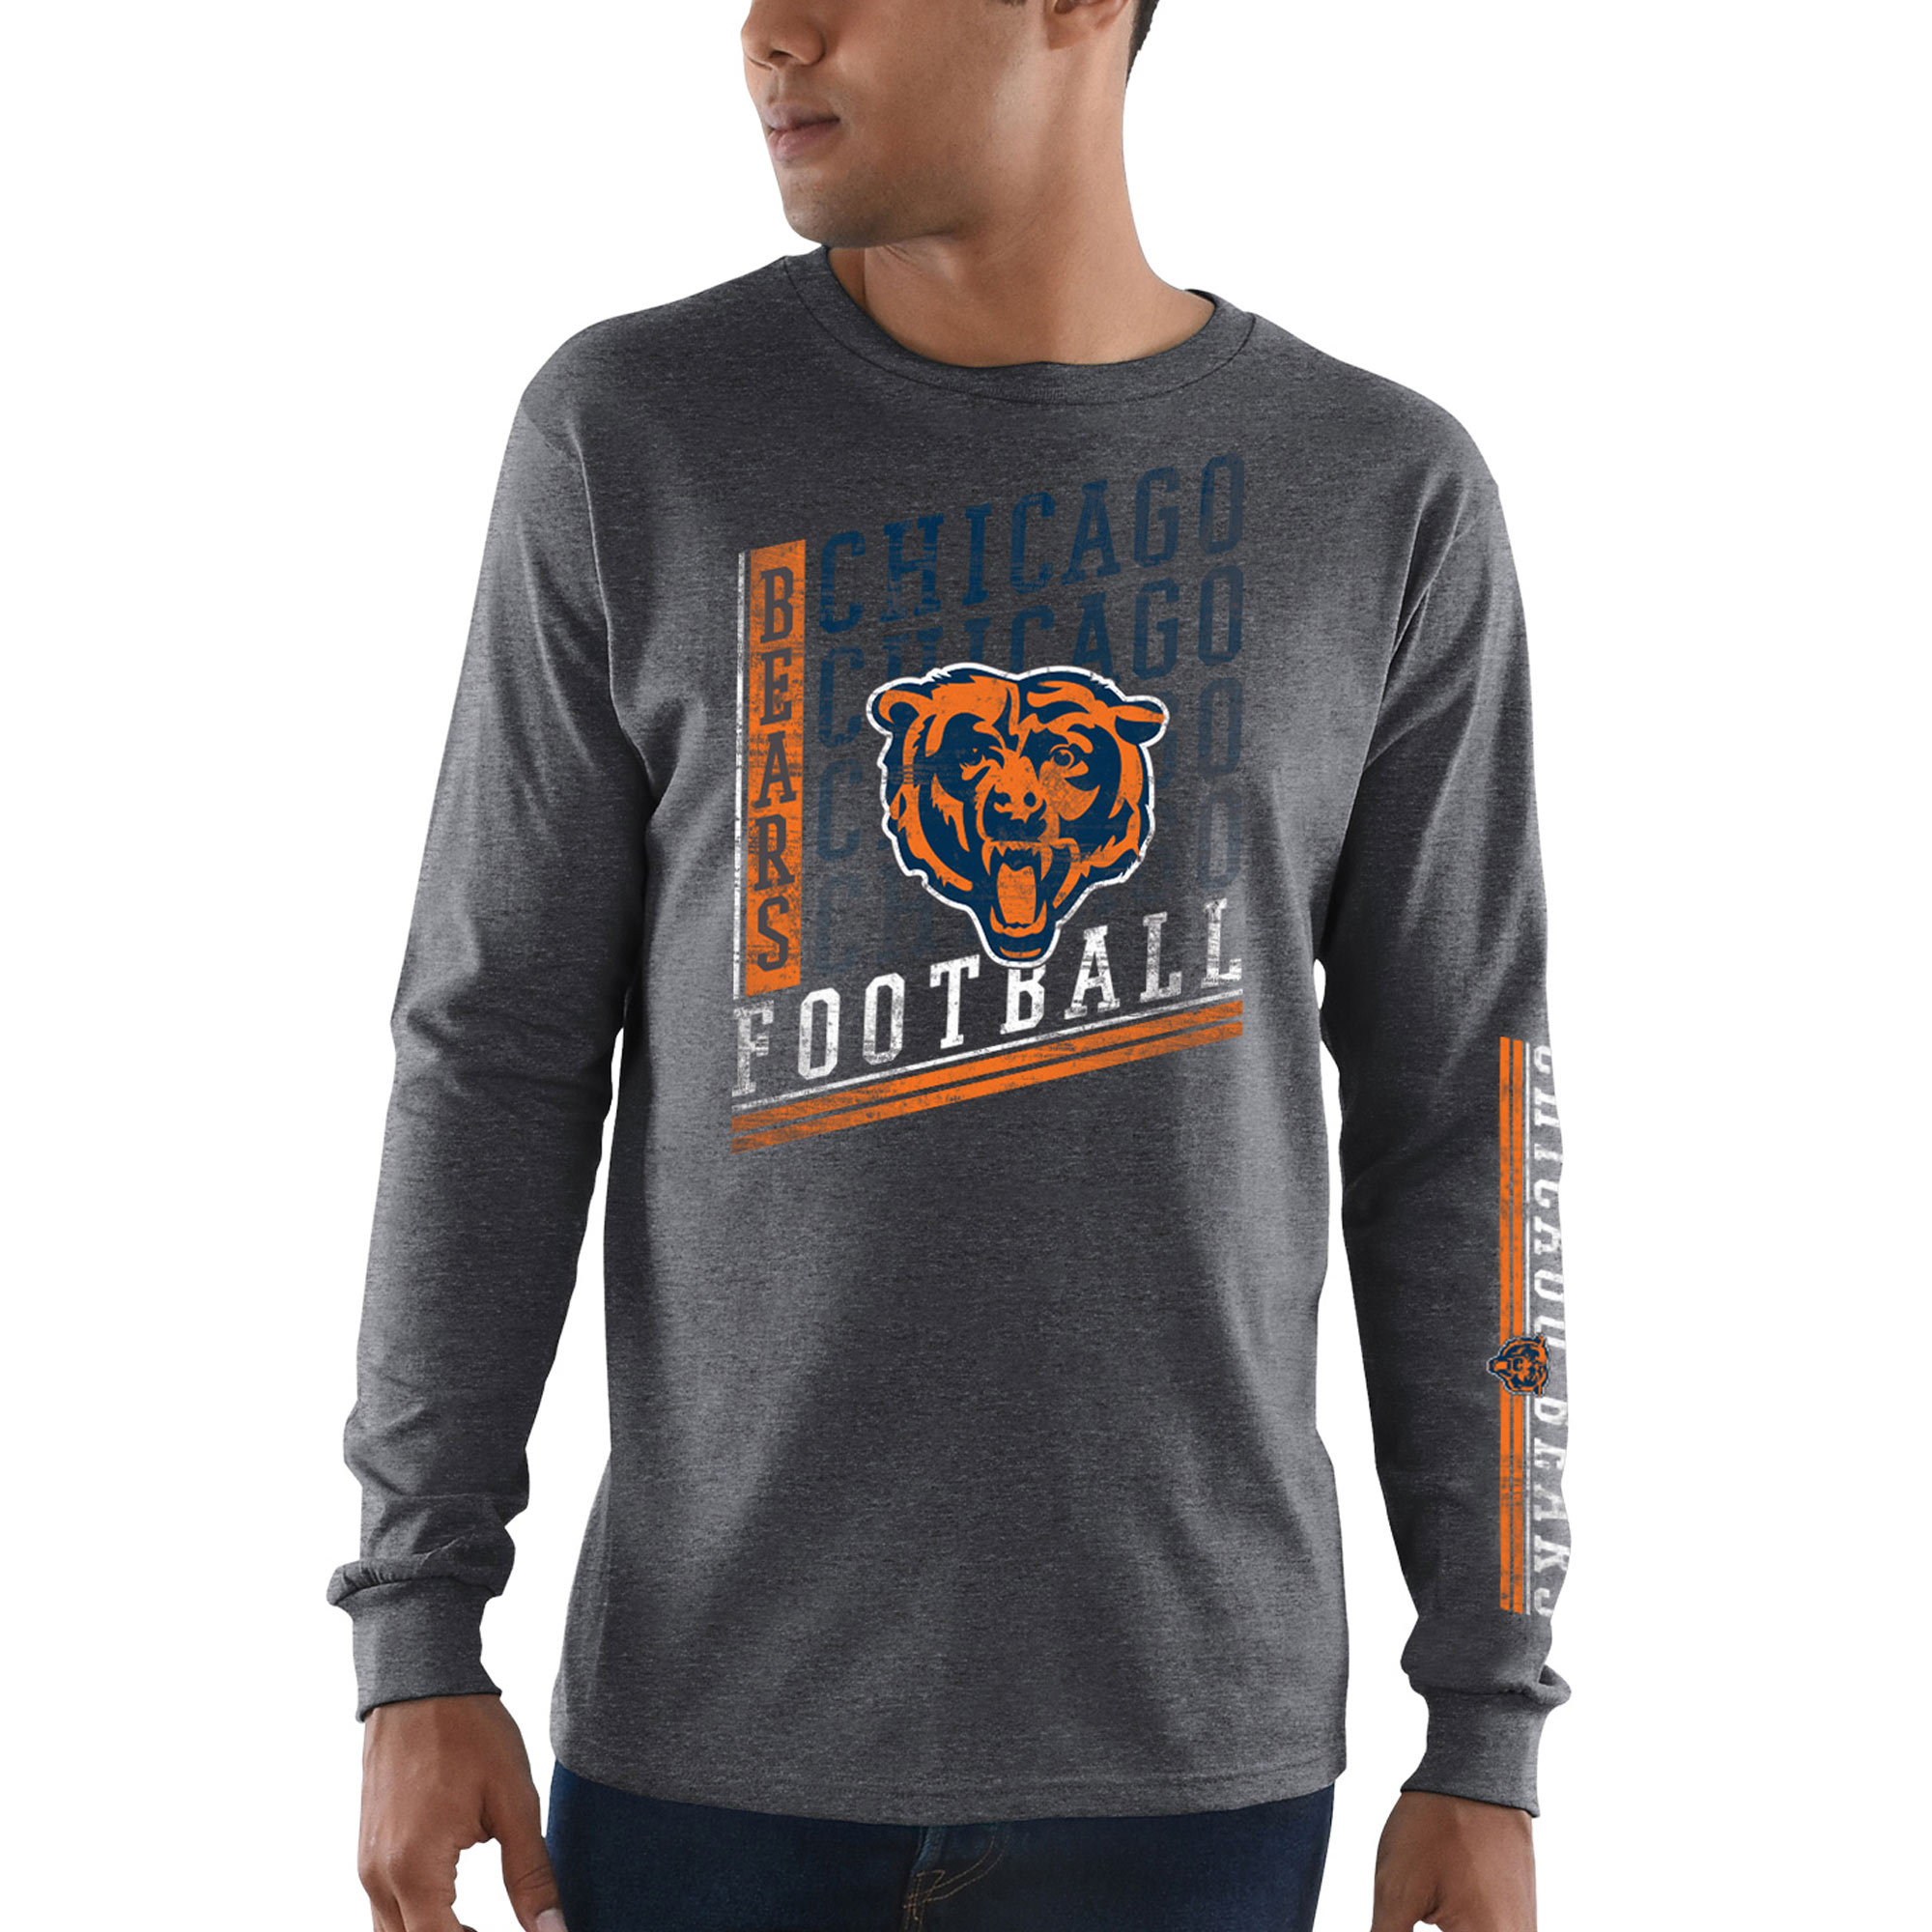 Chicago Bears Majestic Dual Threat Long Sleeve T-Shirt - Heathered Charcoal